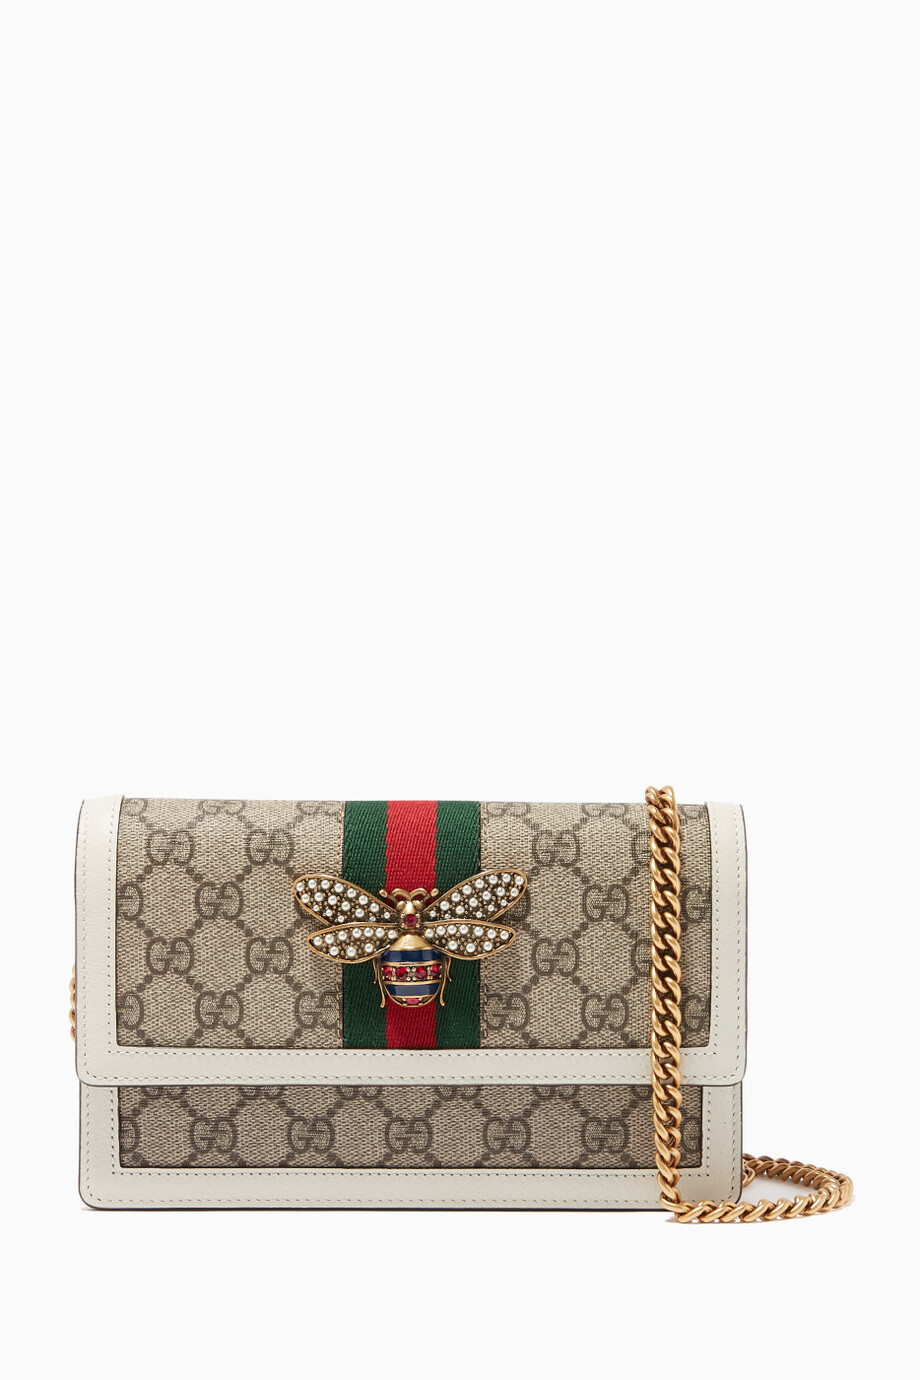 5ce815e8b17fa5 Shop Gucci White GG Canvas Queen Margaret Chain Wallet for Women ...